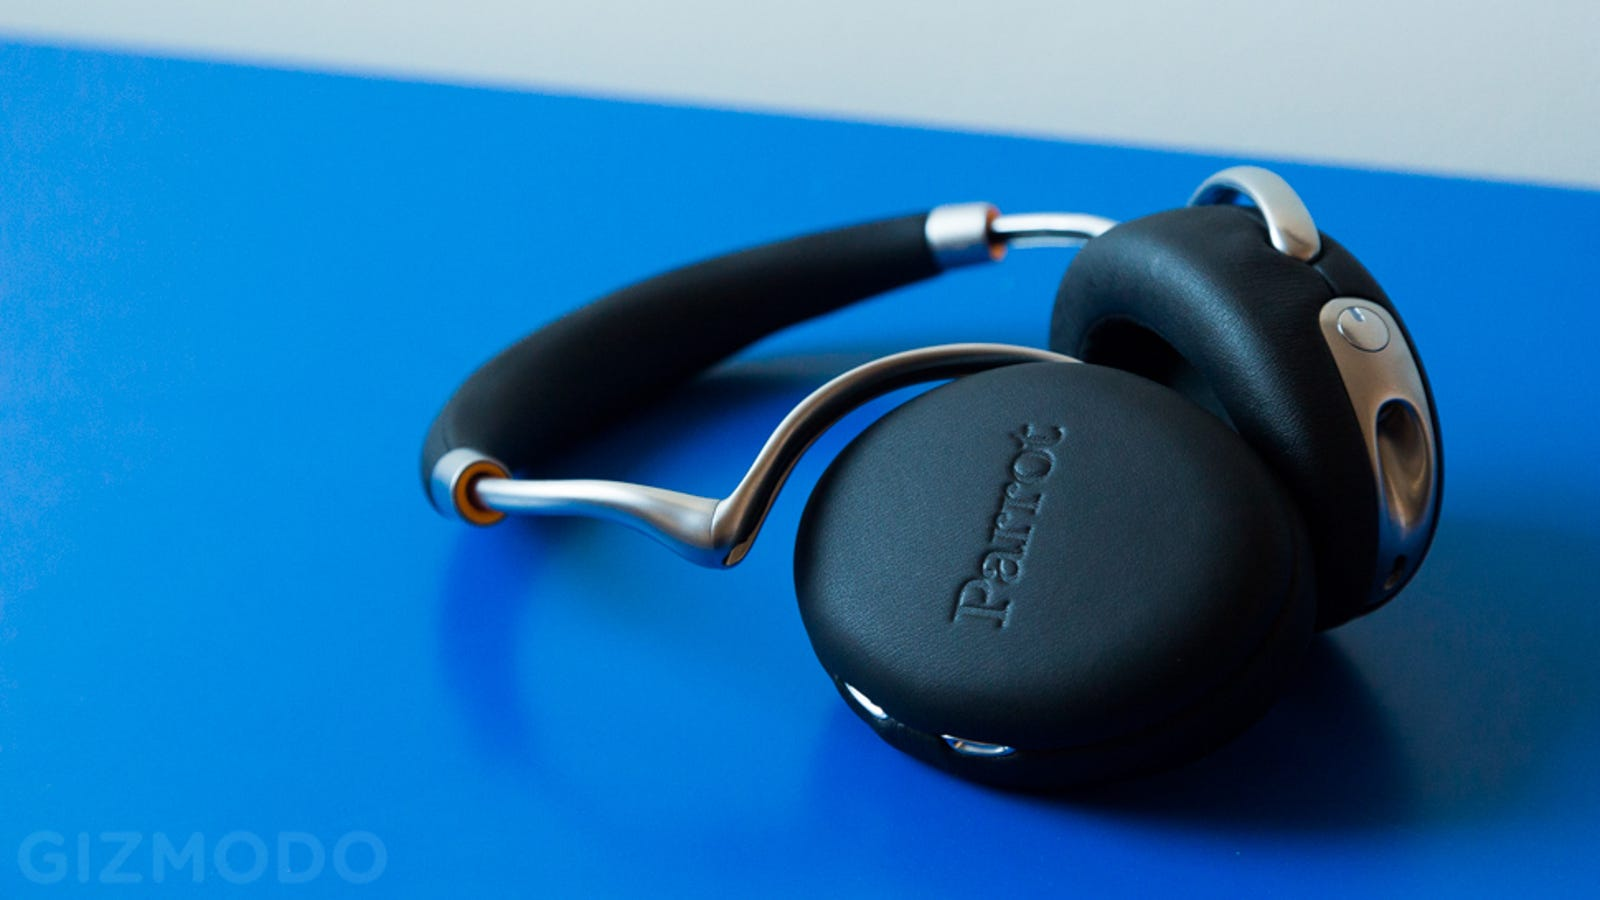 wireless headphones sport over ear - Parrot Zik 2.0 Hands-On: The World's Most Advanced Headphones? Maybe.